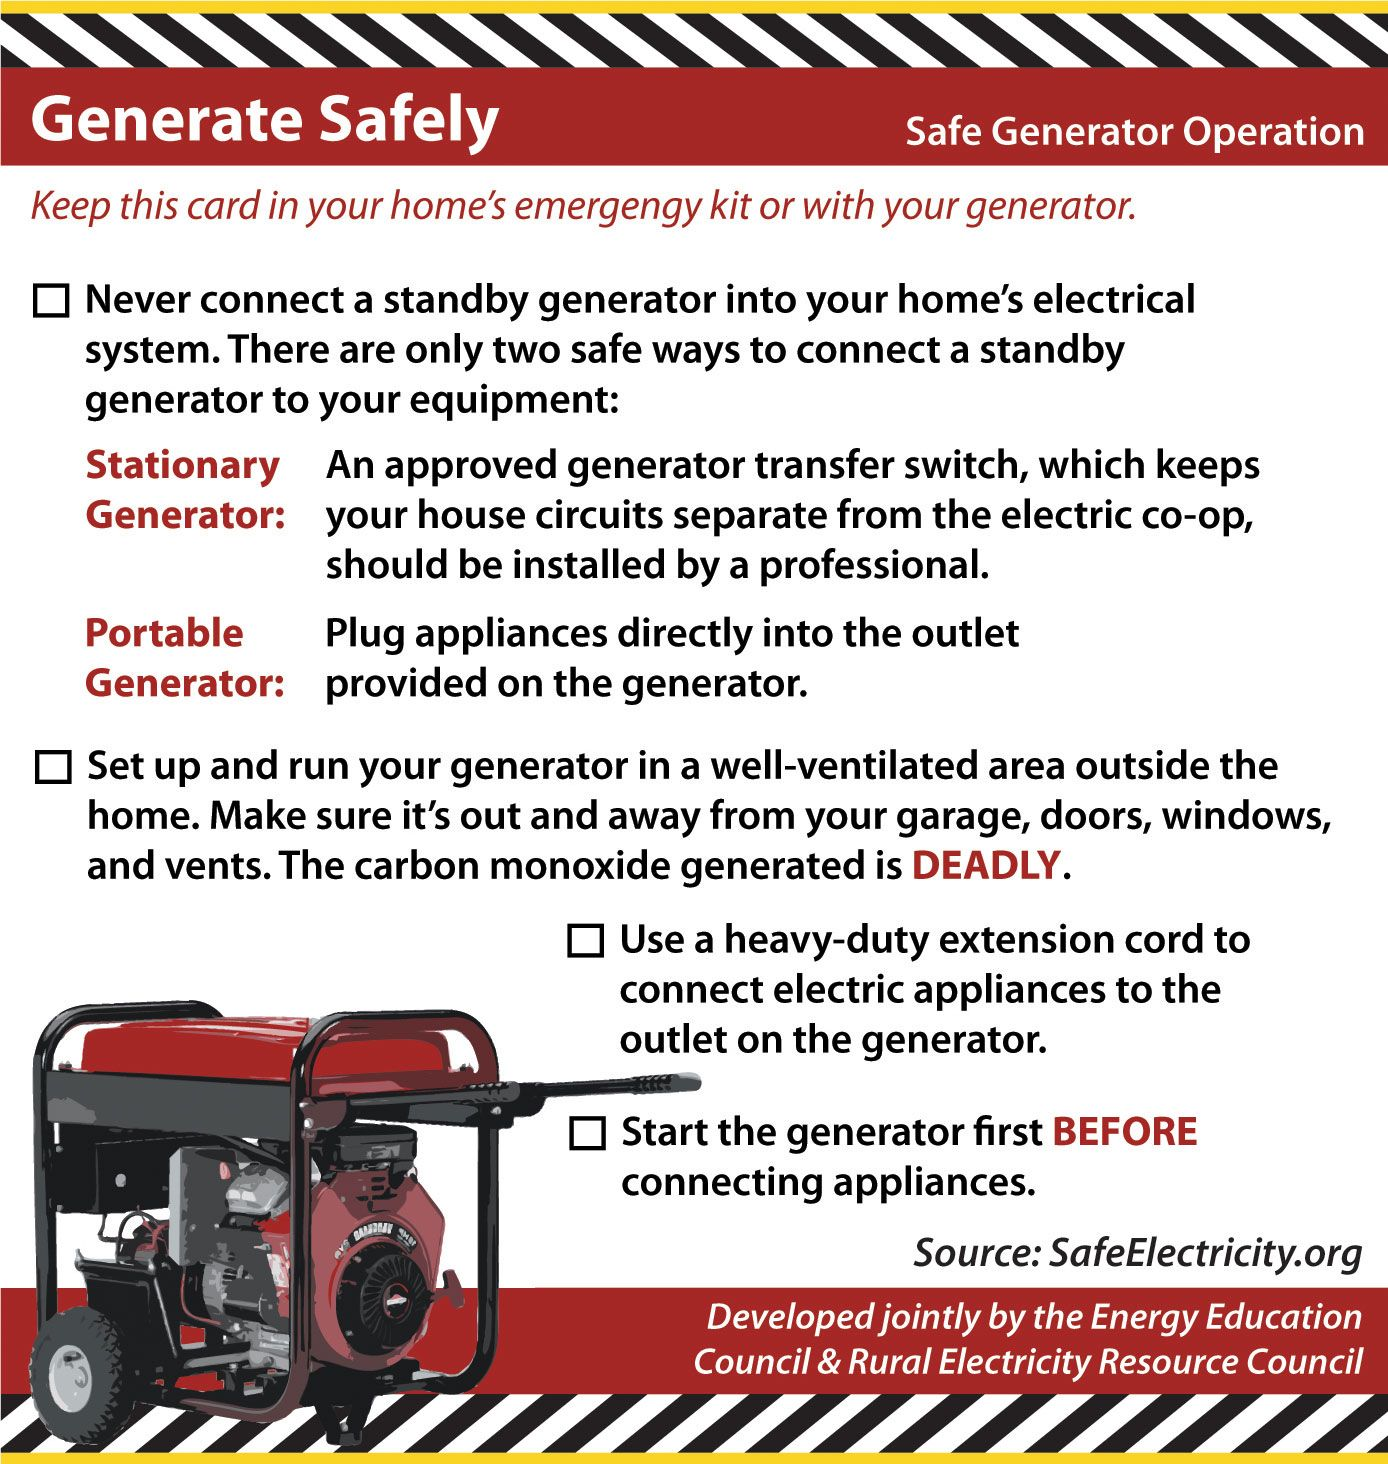 Generate Safety! Fire safety tips, Electrician services